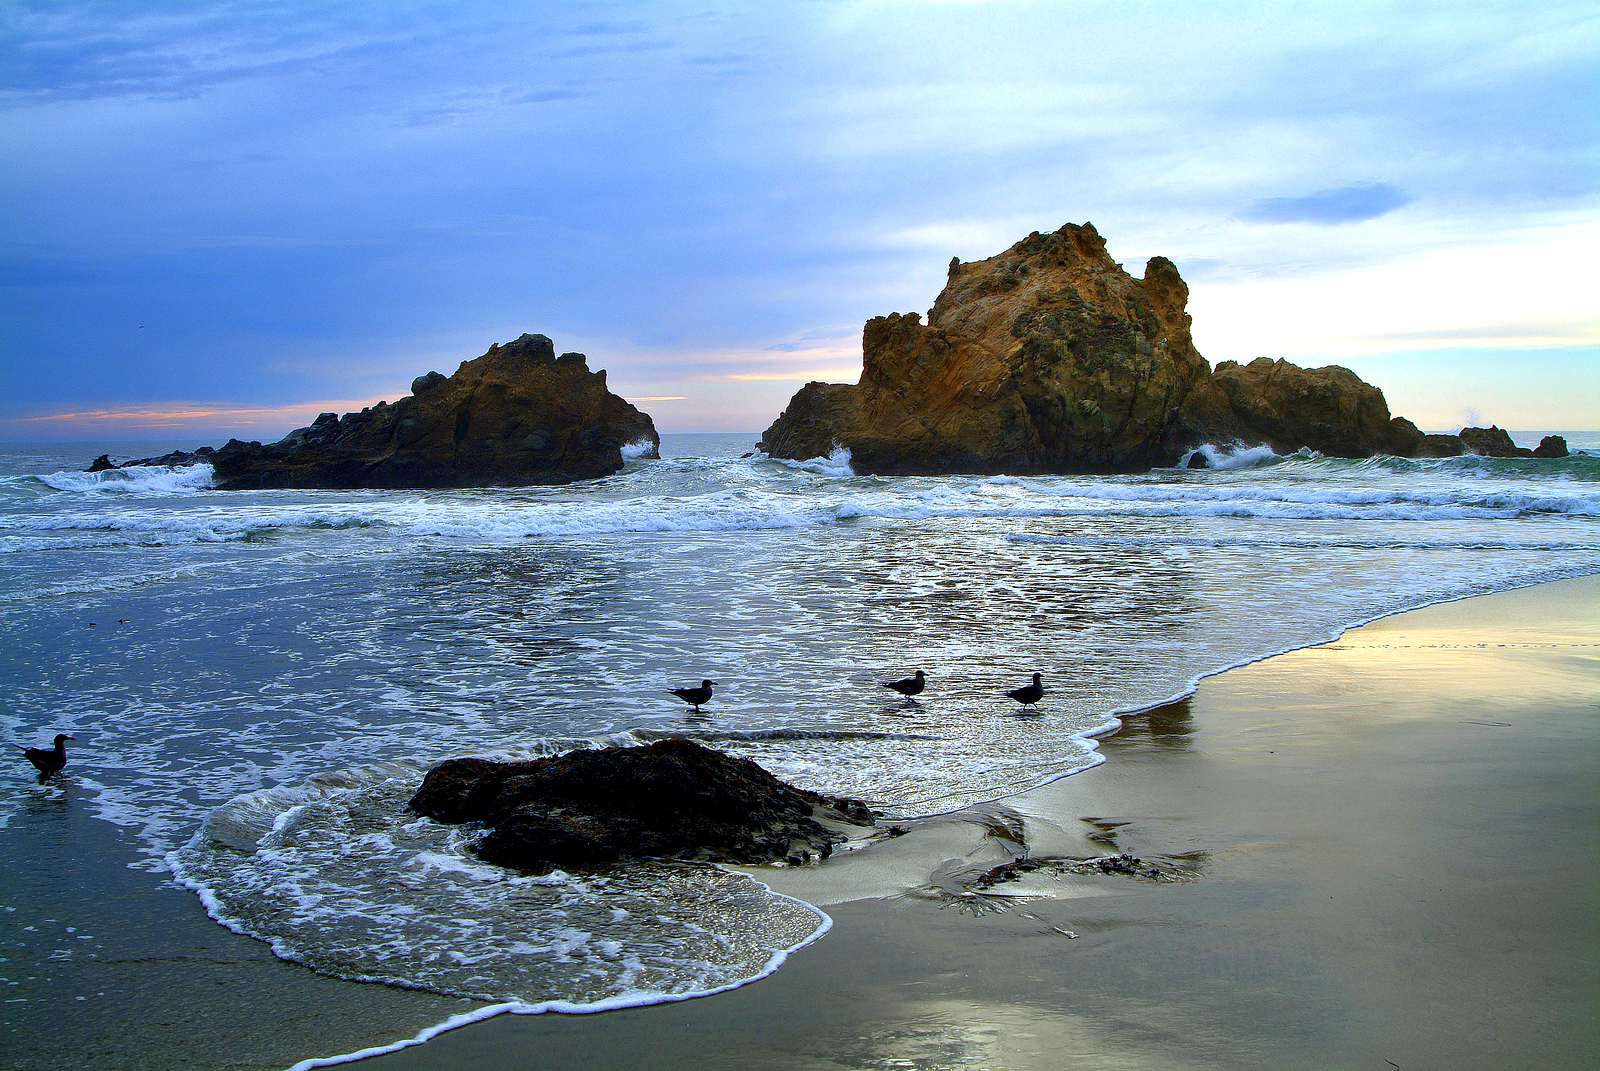 Winter Sunset on Pfeiffer Beach - Big Sur, California